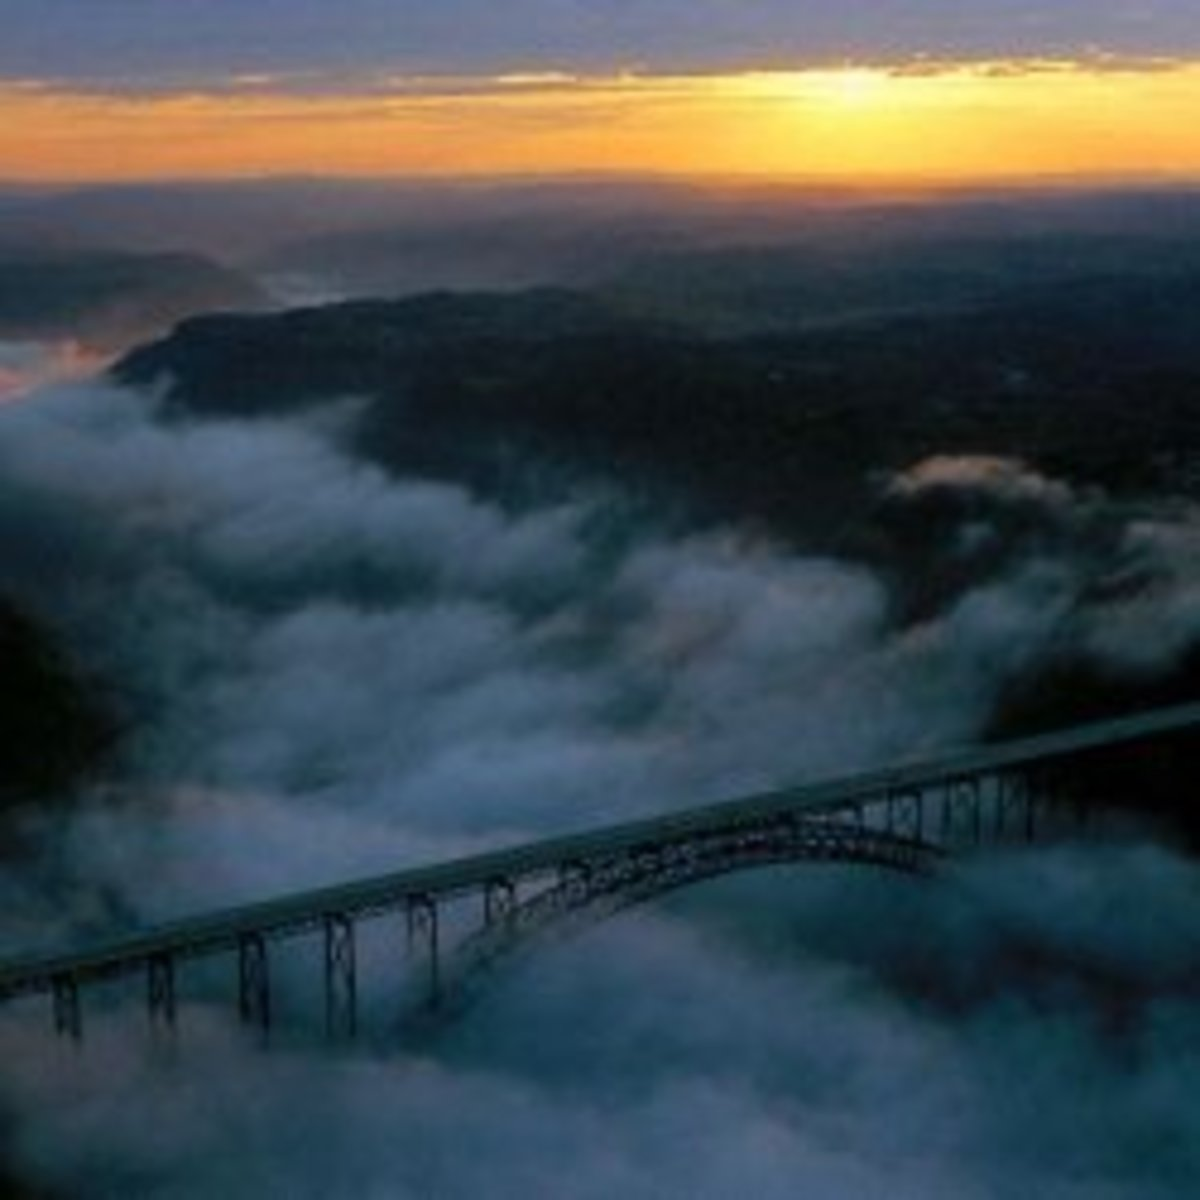 Image credit of the New River Gorge Bridge: http://travel.nationalgeographic.com/travel/united-states/west-virginia-guide/